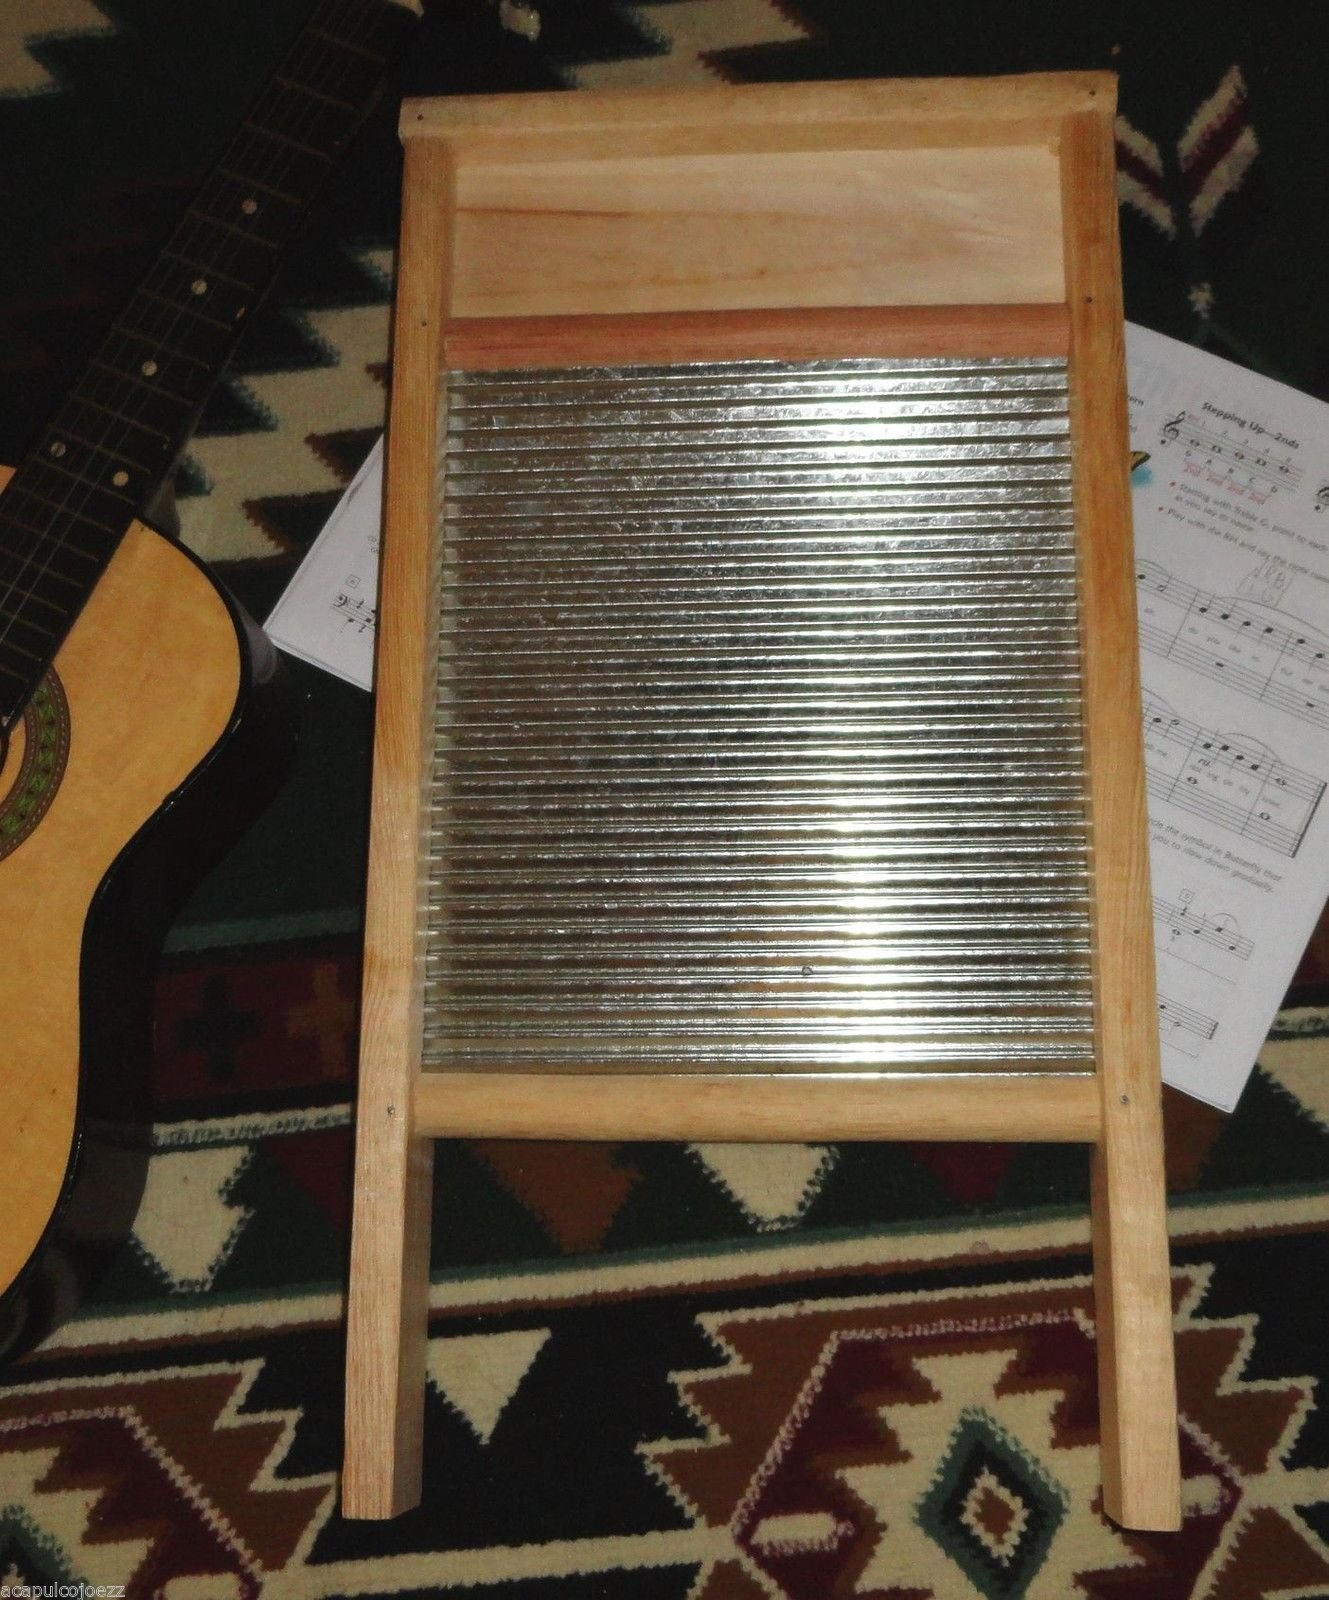 NEW Tallador Musical Acoustic Percussion Musicians Washboard Size 23 inches -WASHBOARD 23 INCHES